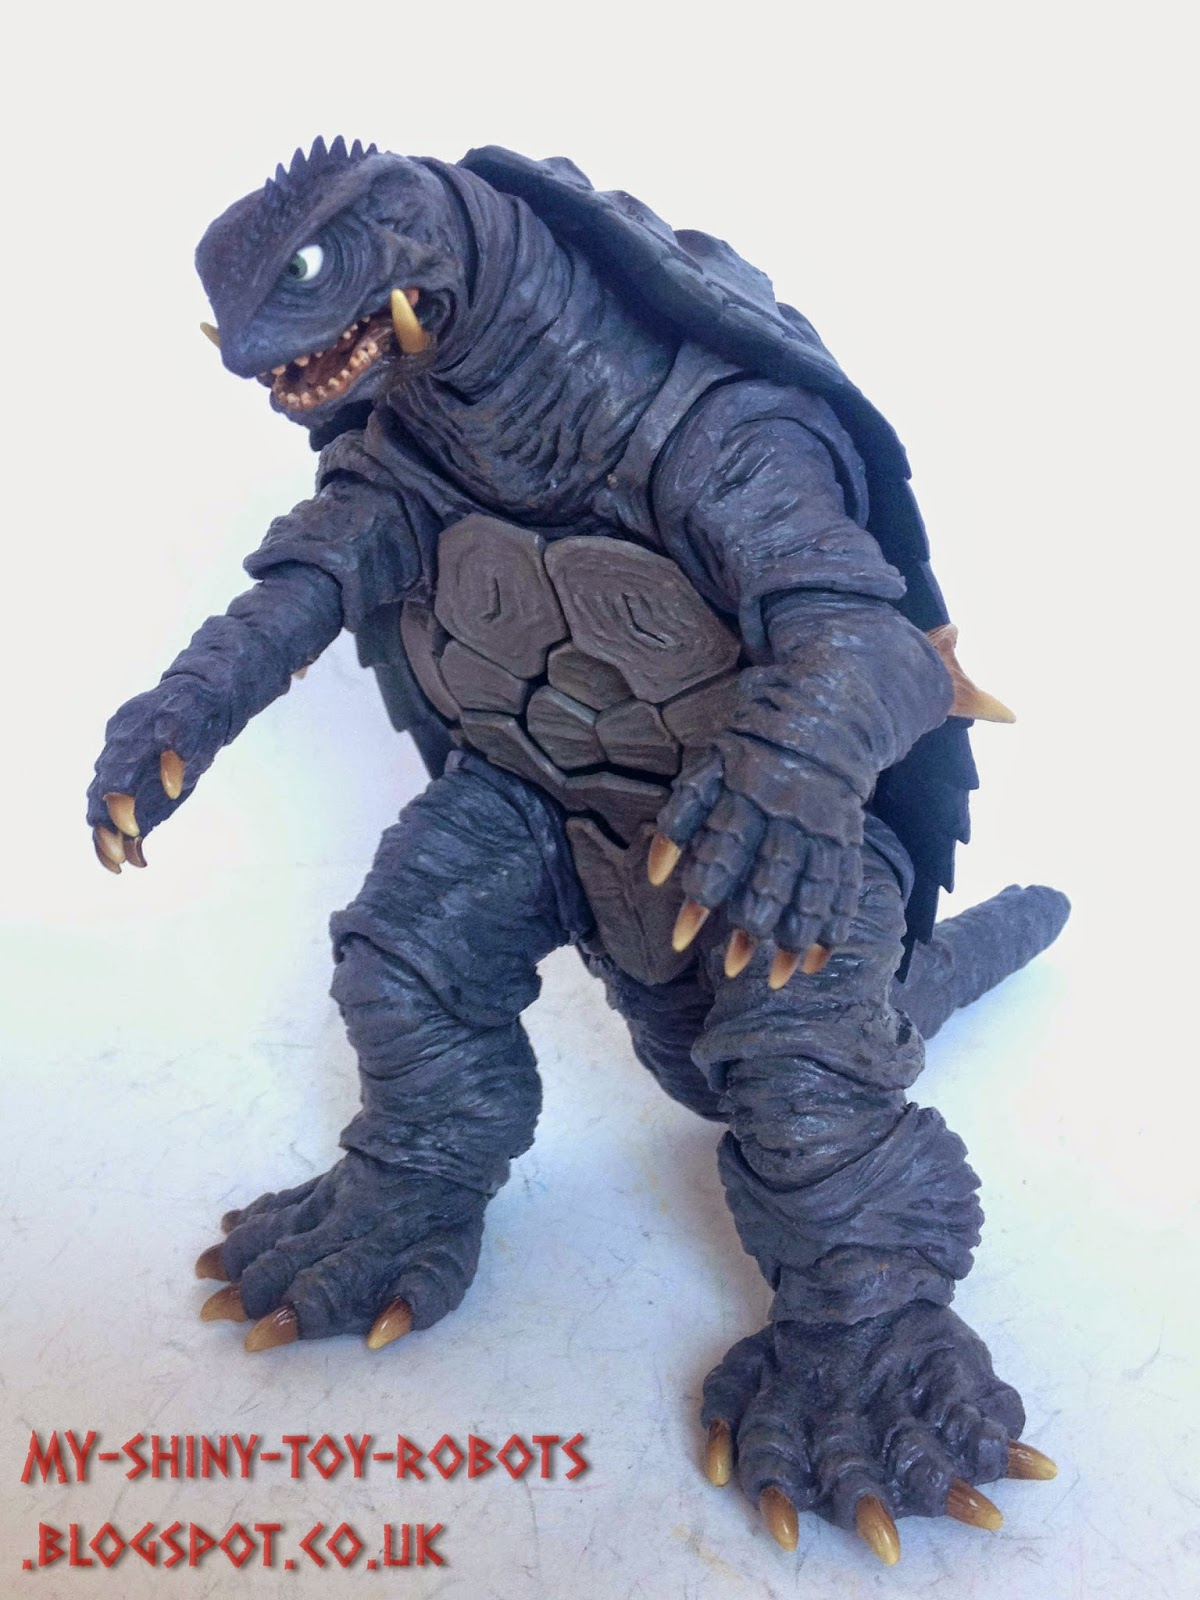 Gamera side view